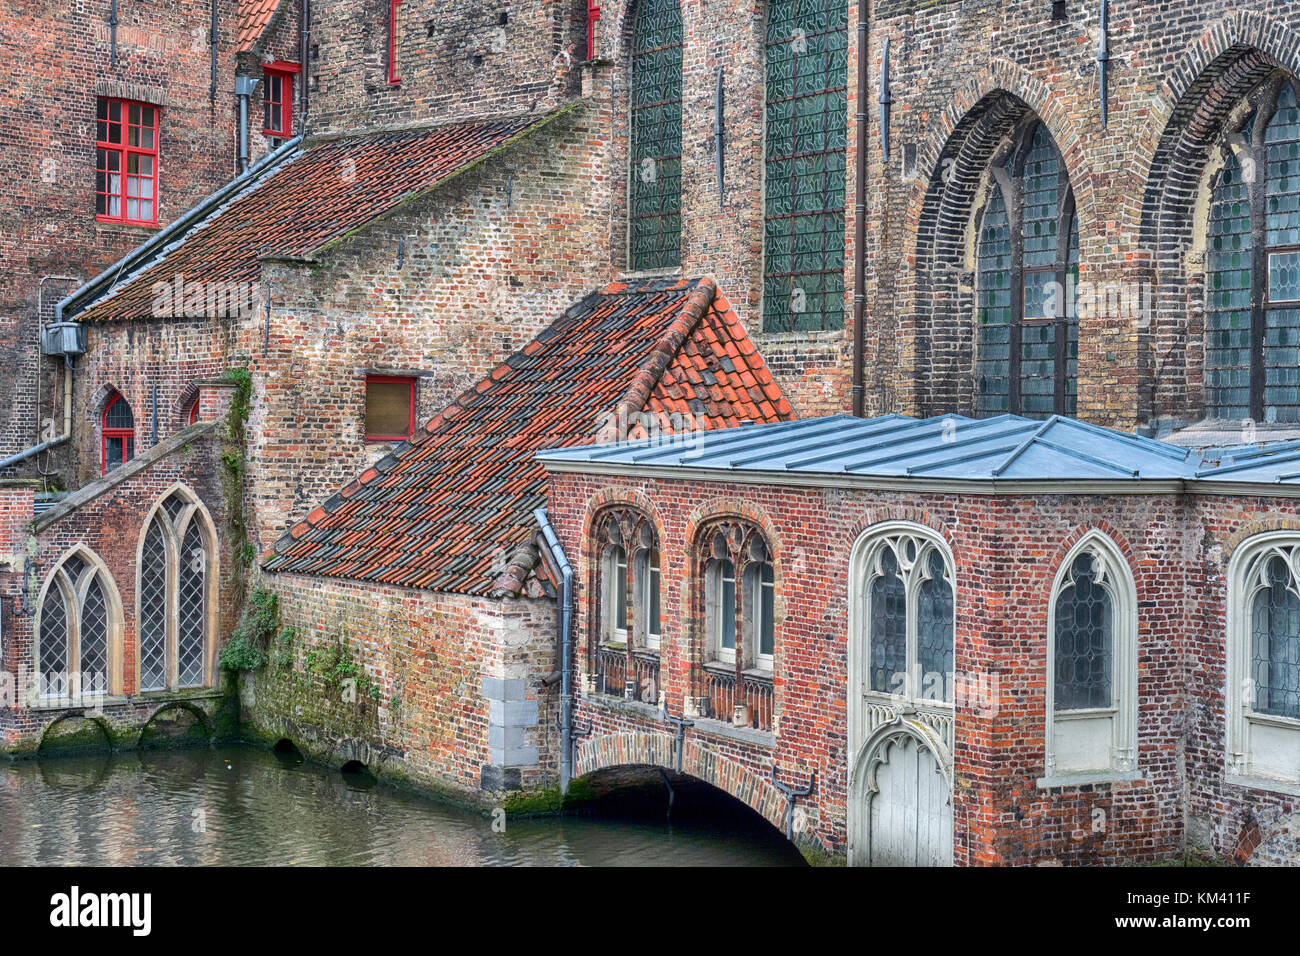 Detail of the old hospital building, people used to be able to arrive by boat via the canals Stock Photo